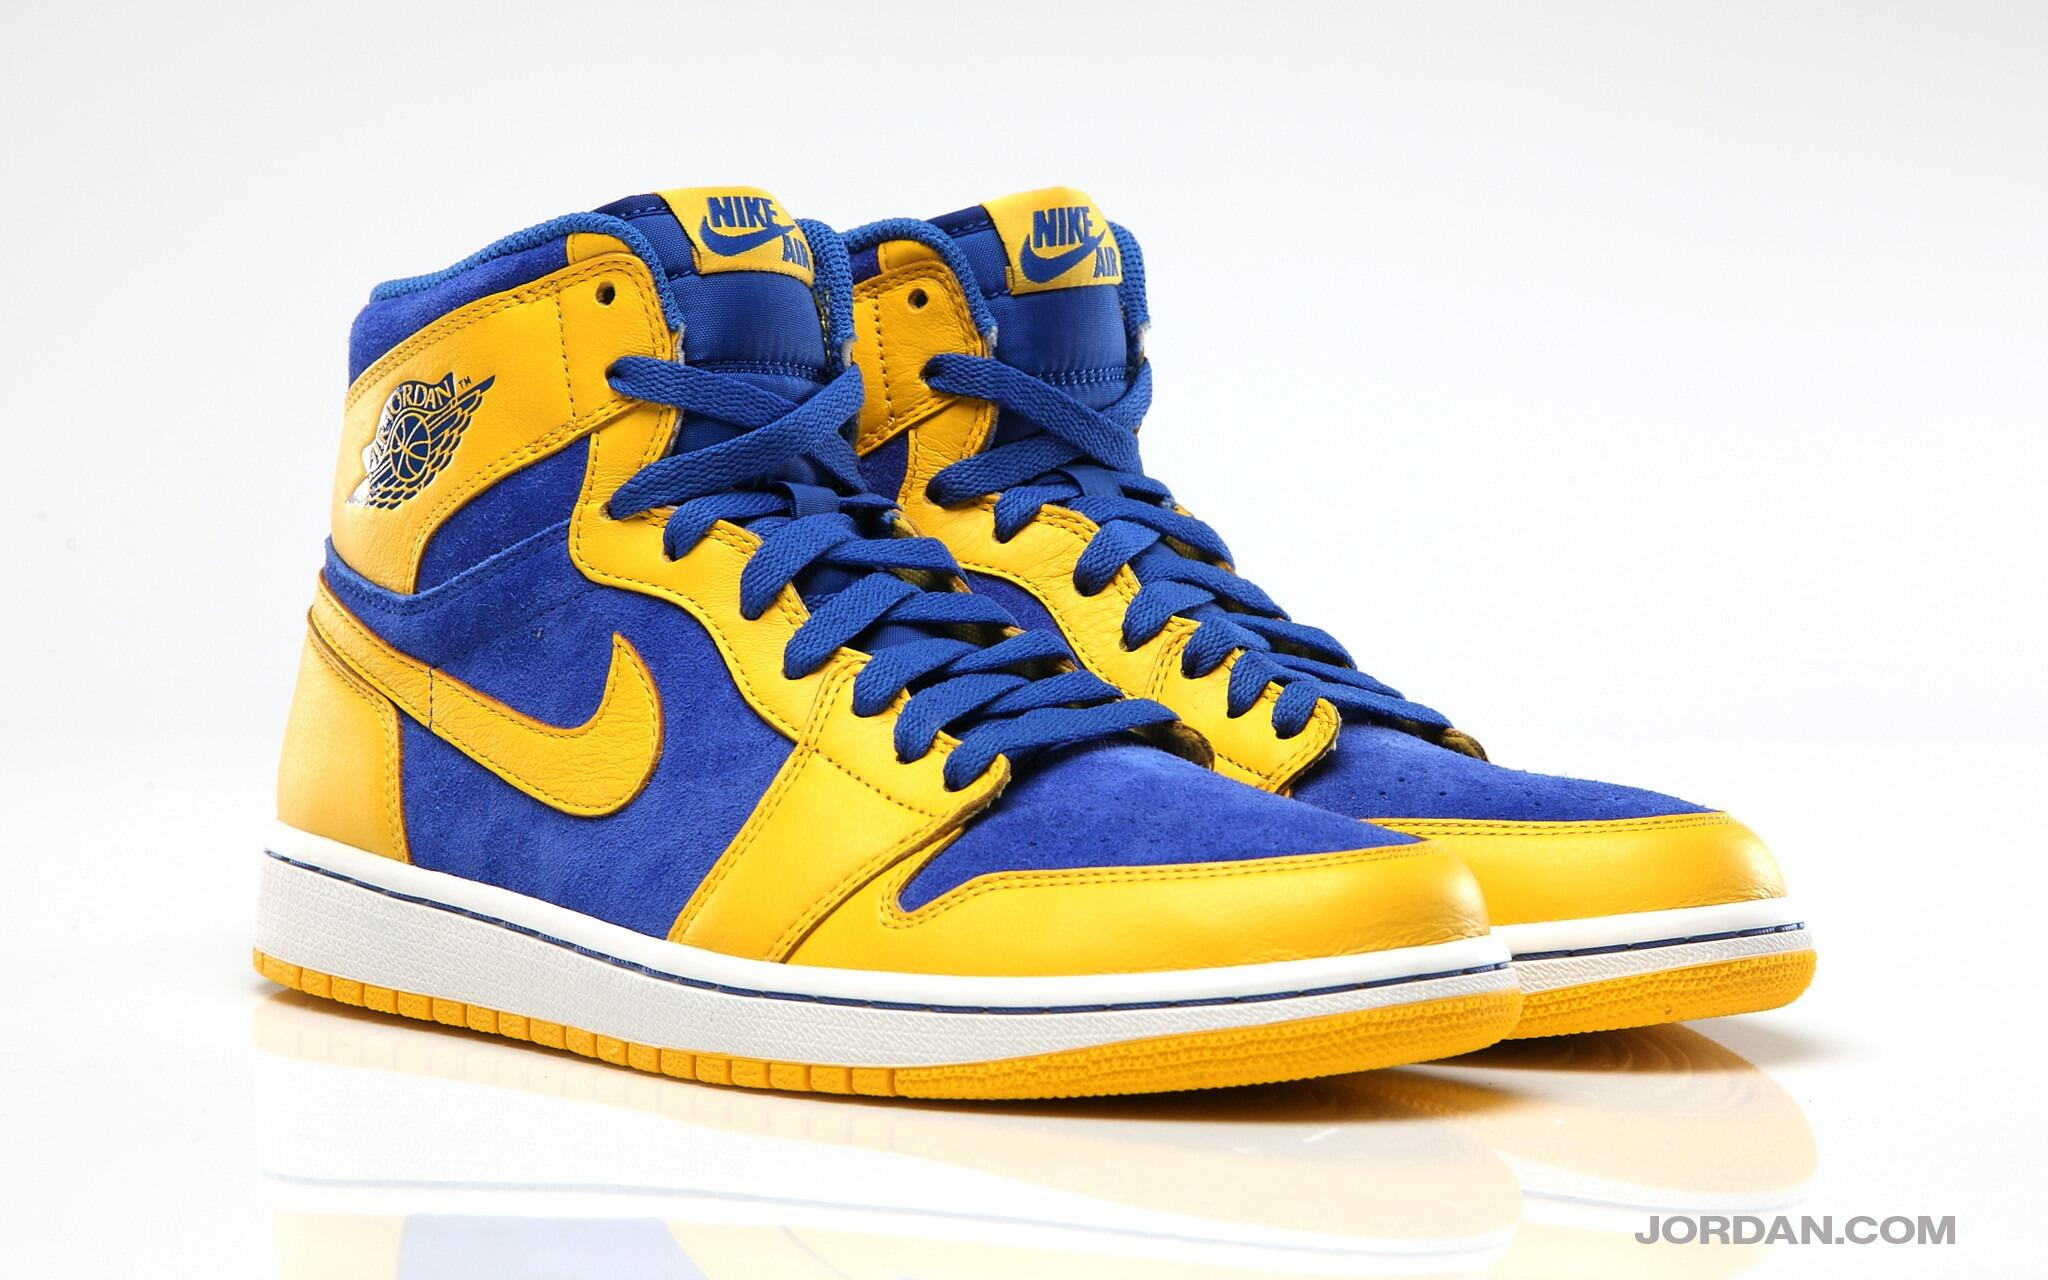 Saturday's OG drop takes the AJ1 Retro High back to school with a Laney-inspired mix of Varsity Maize and Game Royal. http://t.co/pLcfNrNOCa